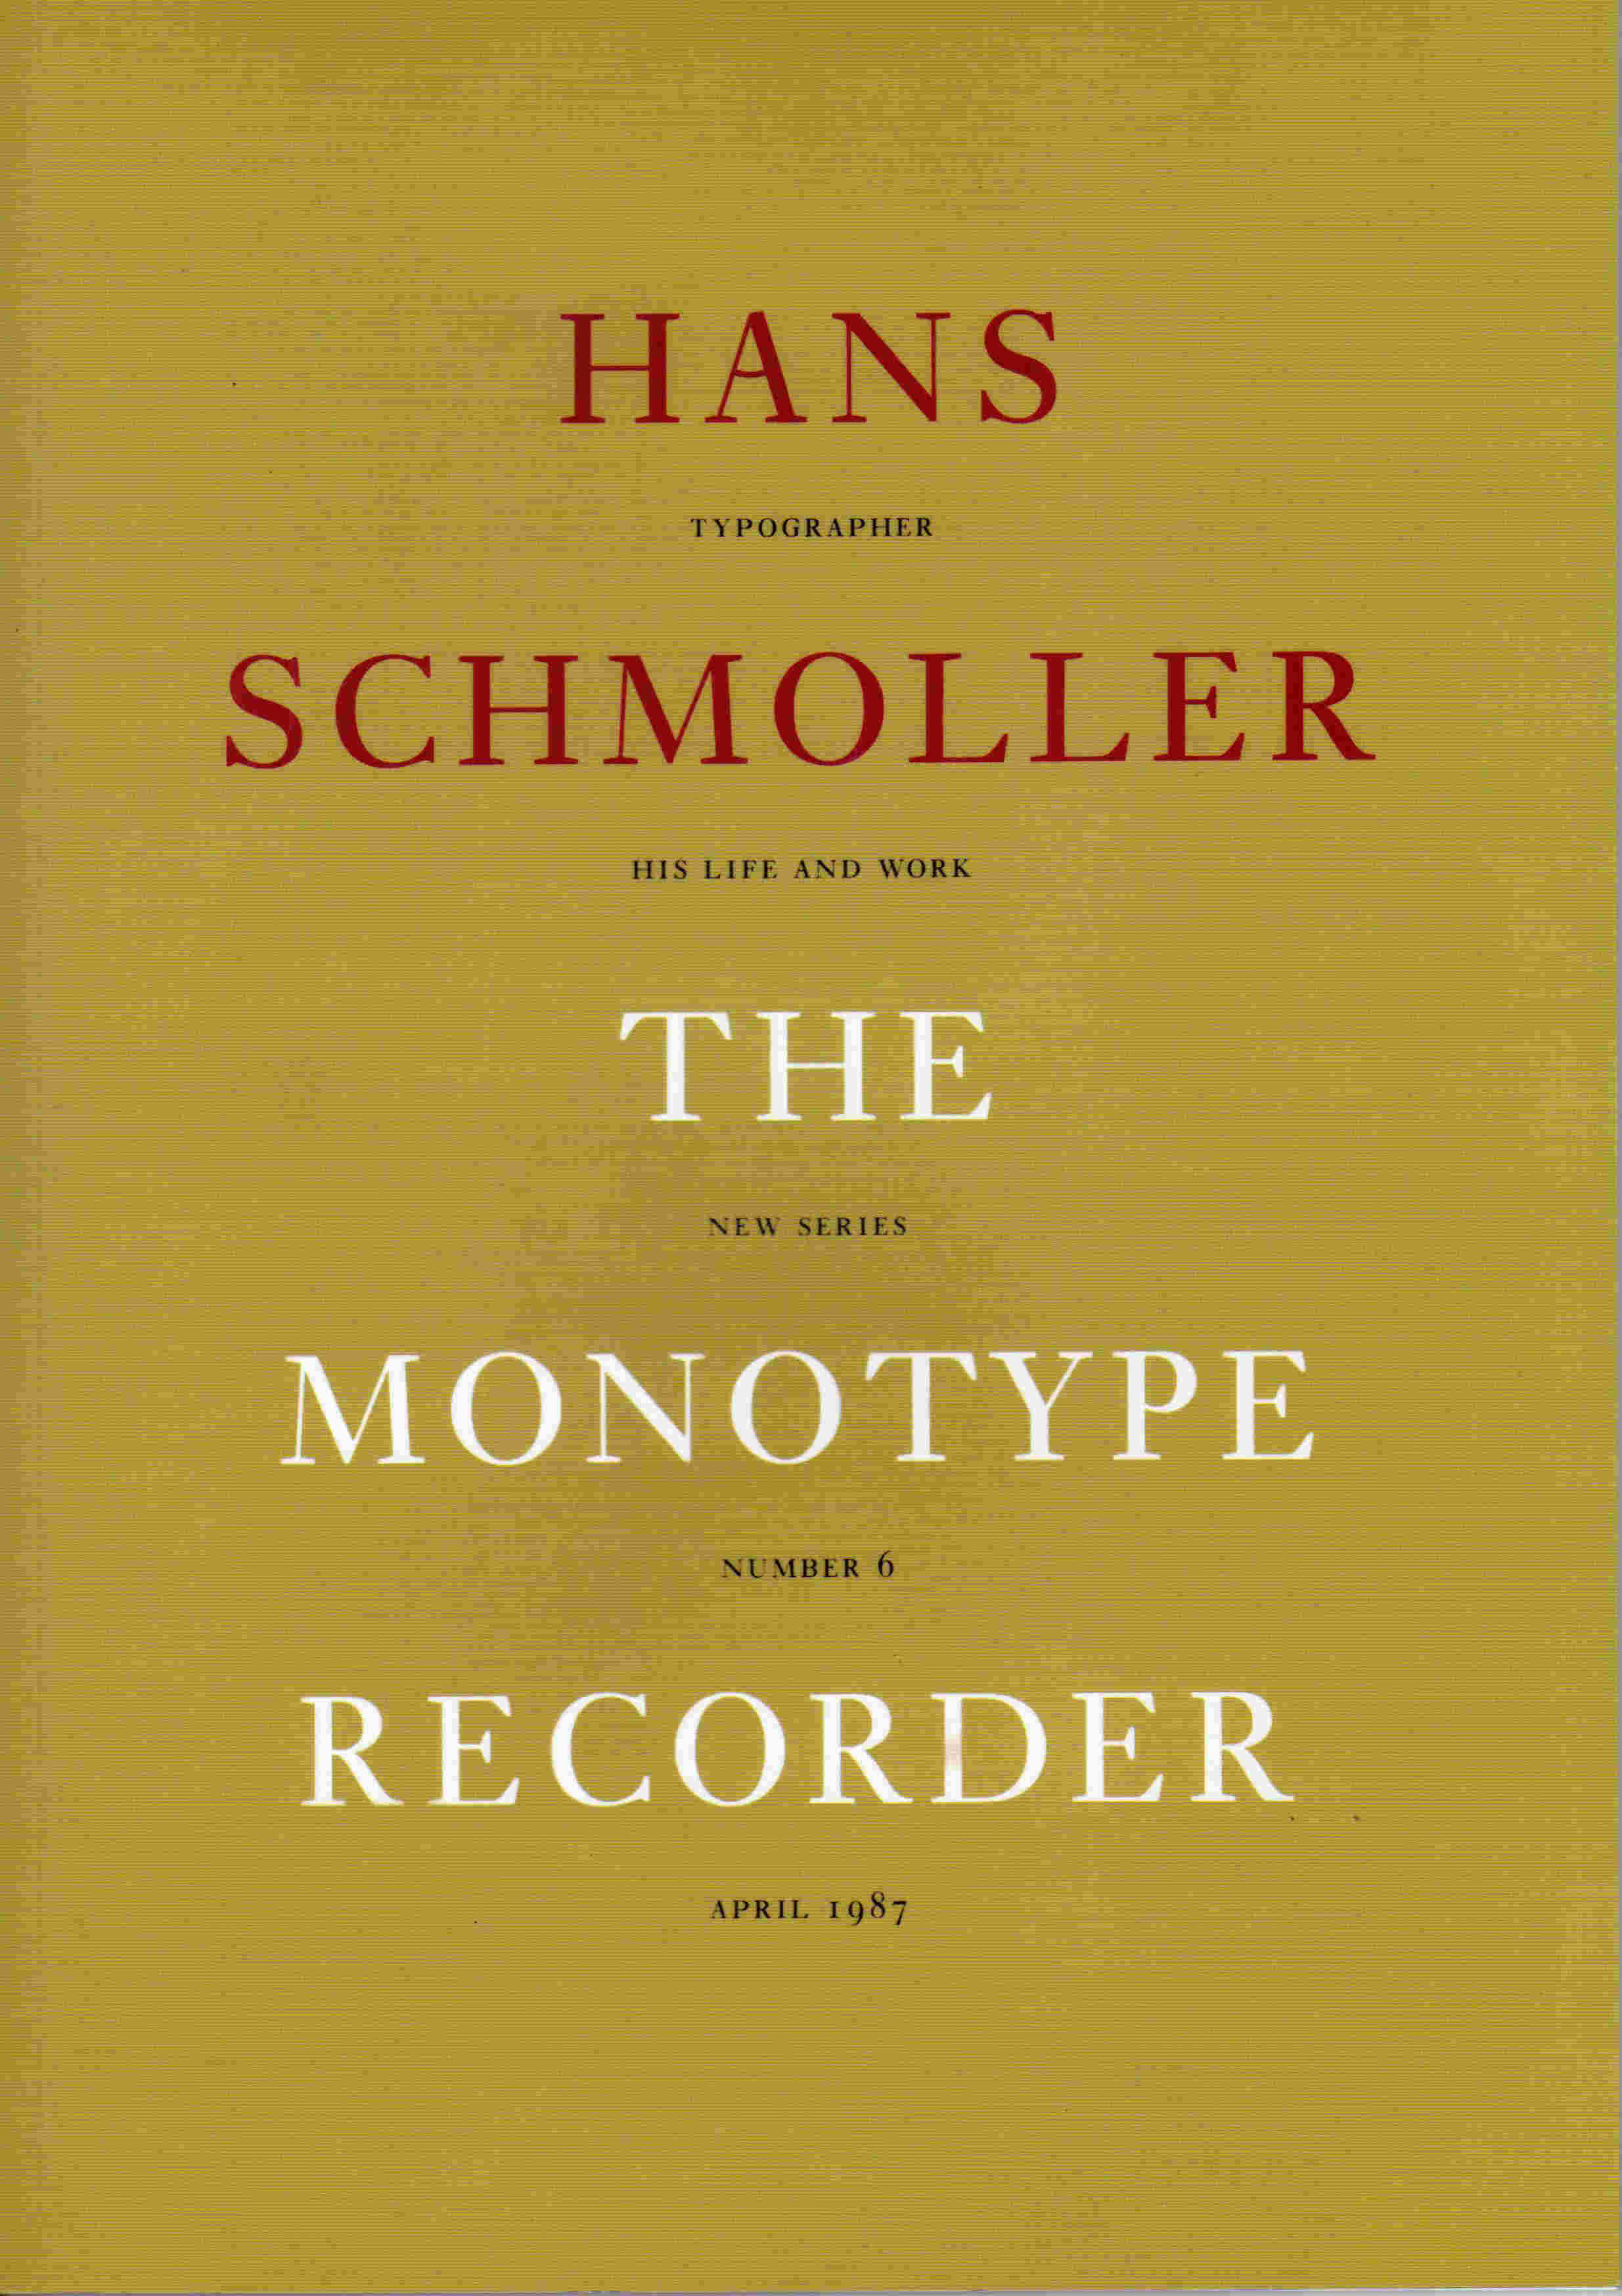 Hans Schmoller The Monotype Recorder